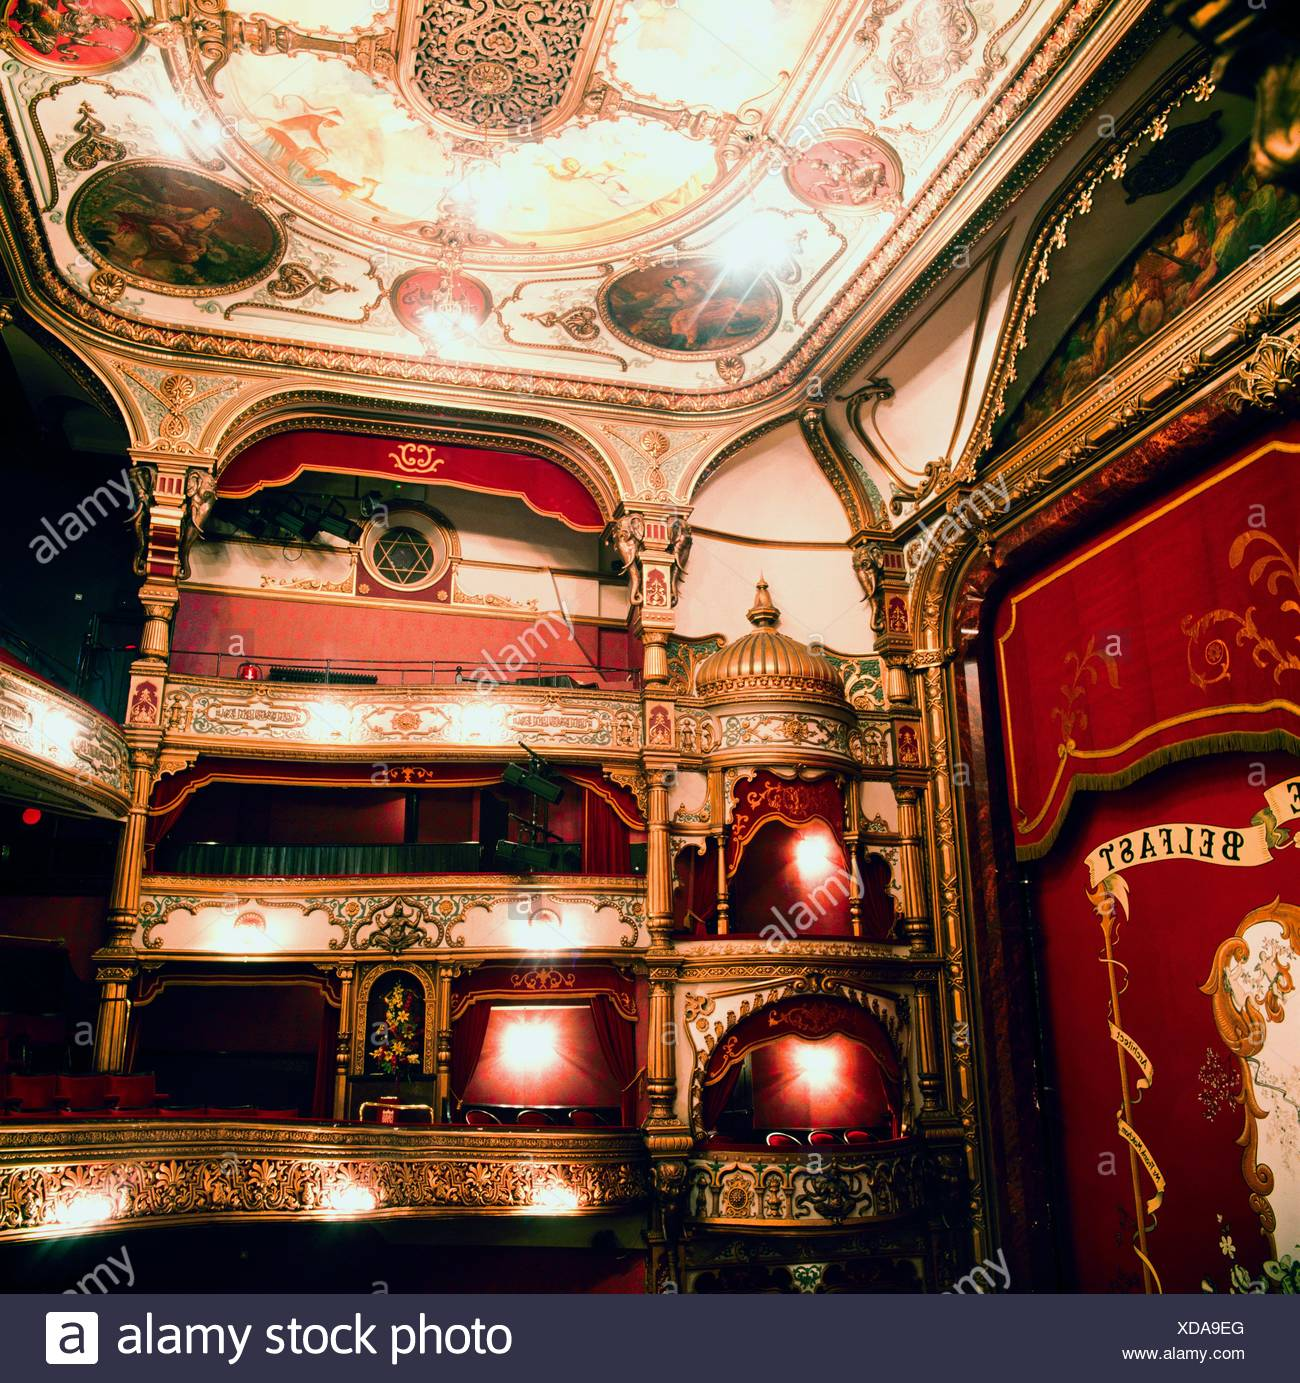 Grand Opera House, Belfast, Ireland; Opera House Designed By Frank Matcham And Opened In 1895 - Stock Image